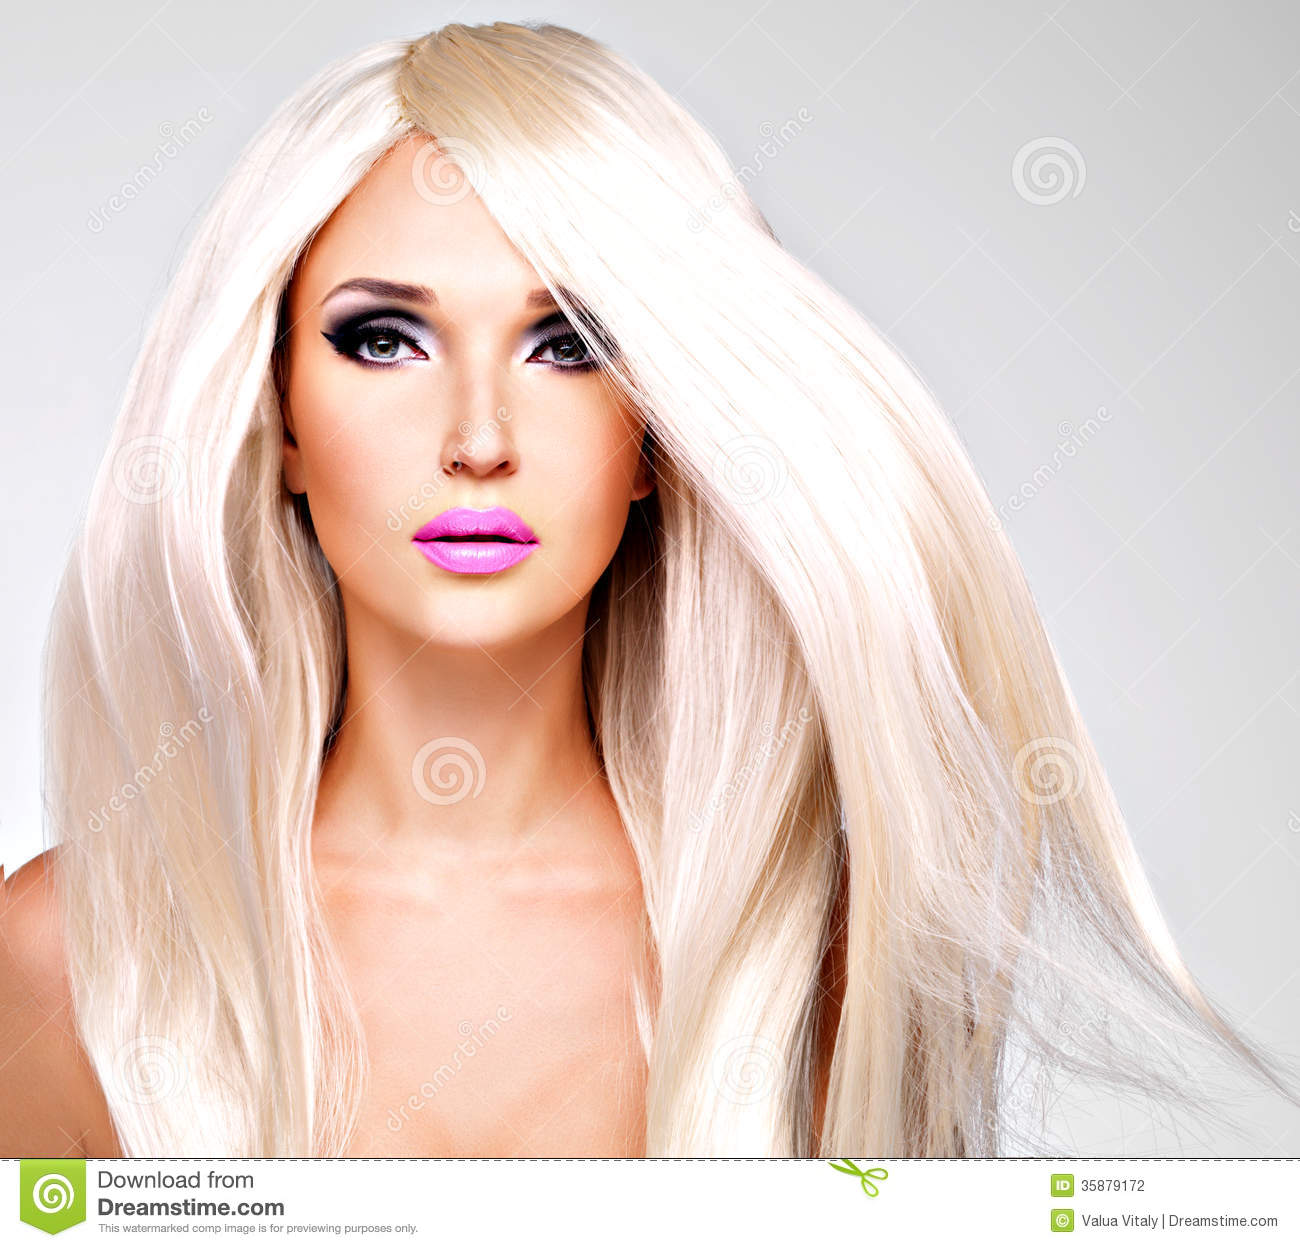 Lipstick Pretty Girl Faces: Portrait Of A Beautiful Woman With Long White Straight